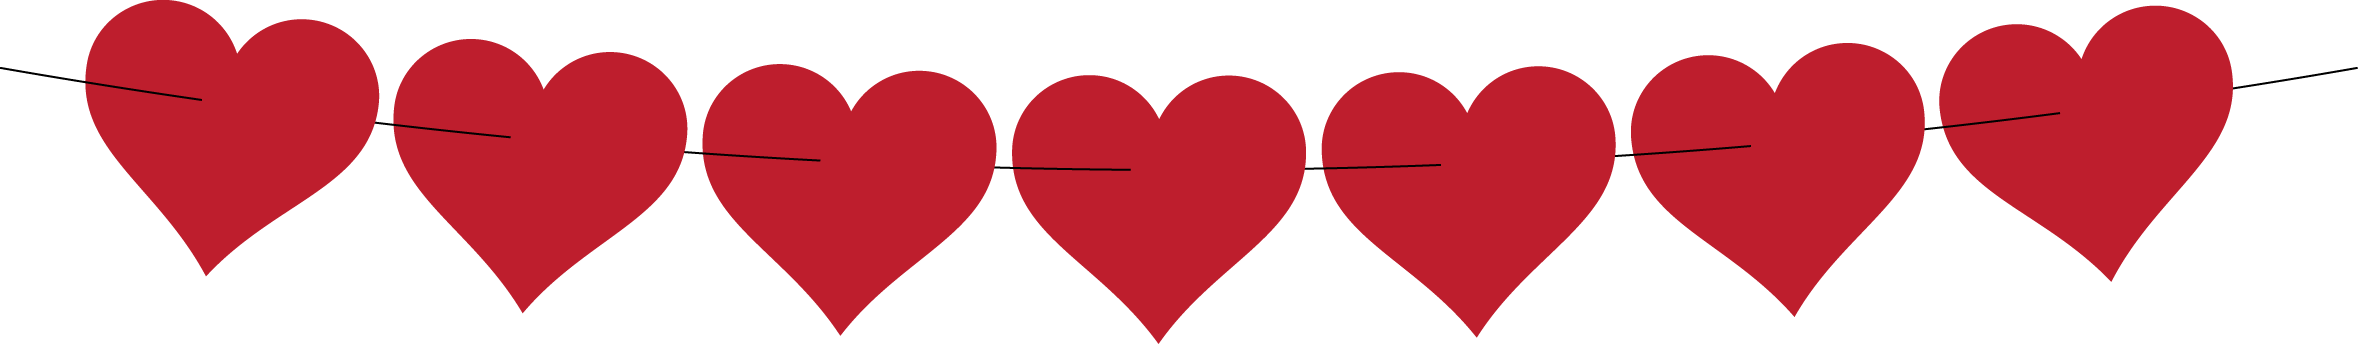 Valentines day heart clipart. Line of hearts png